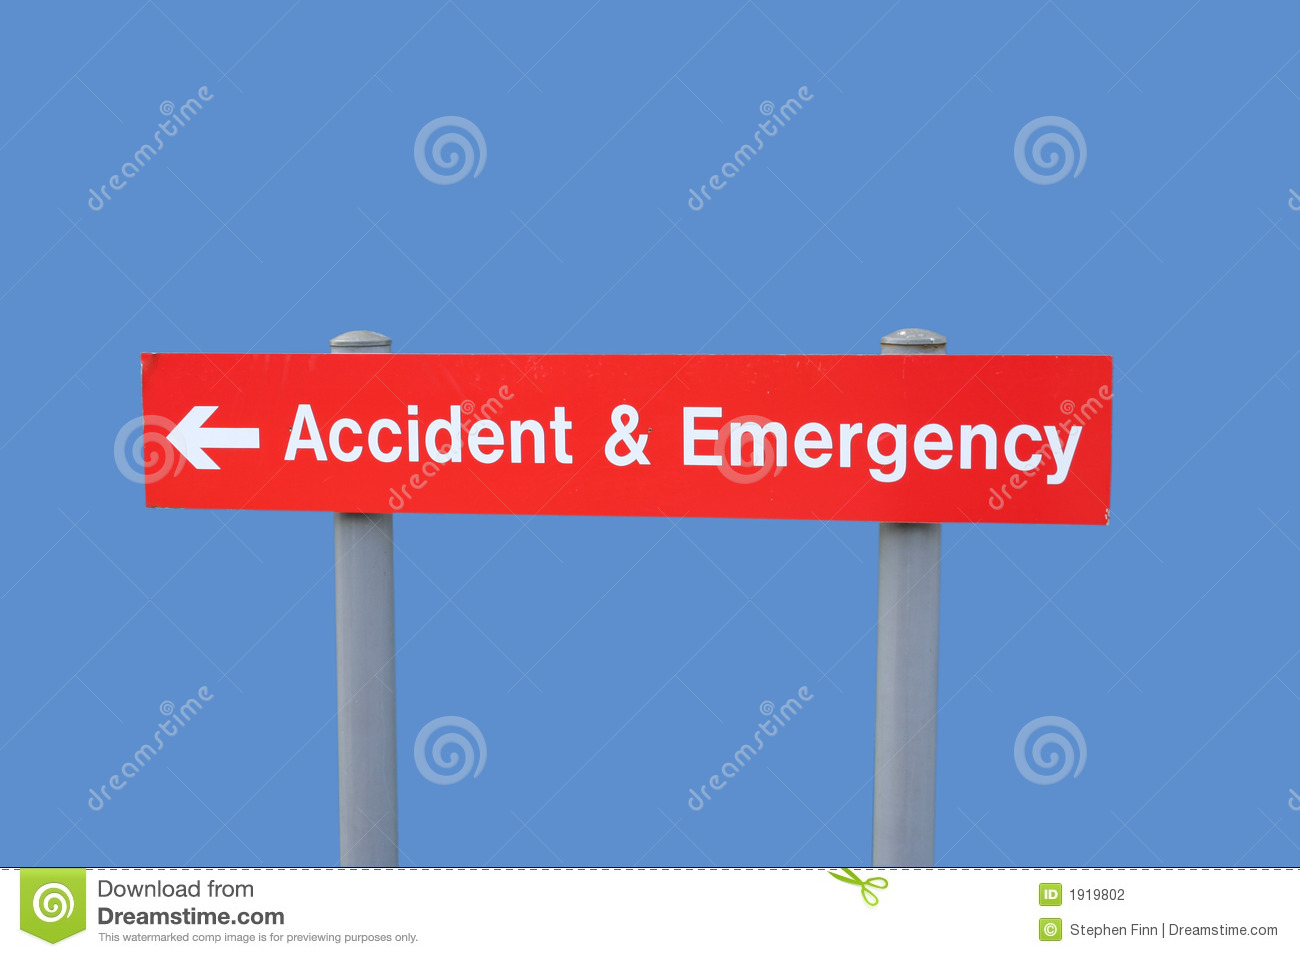 Emergency Room Clipart - More information